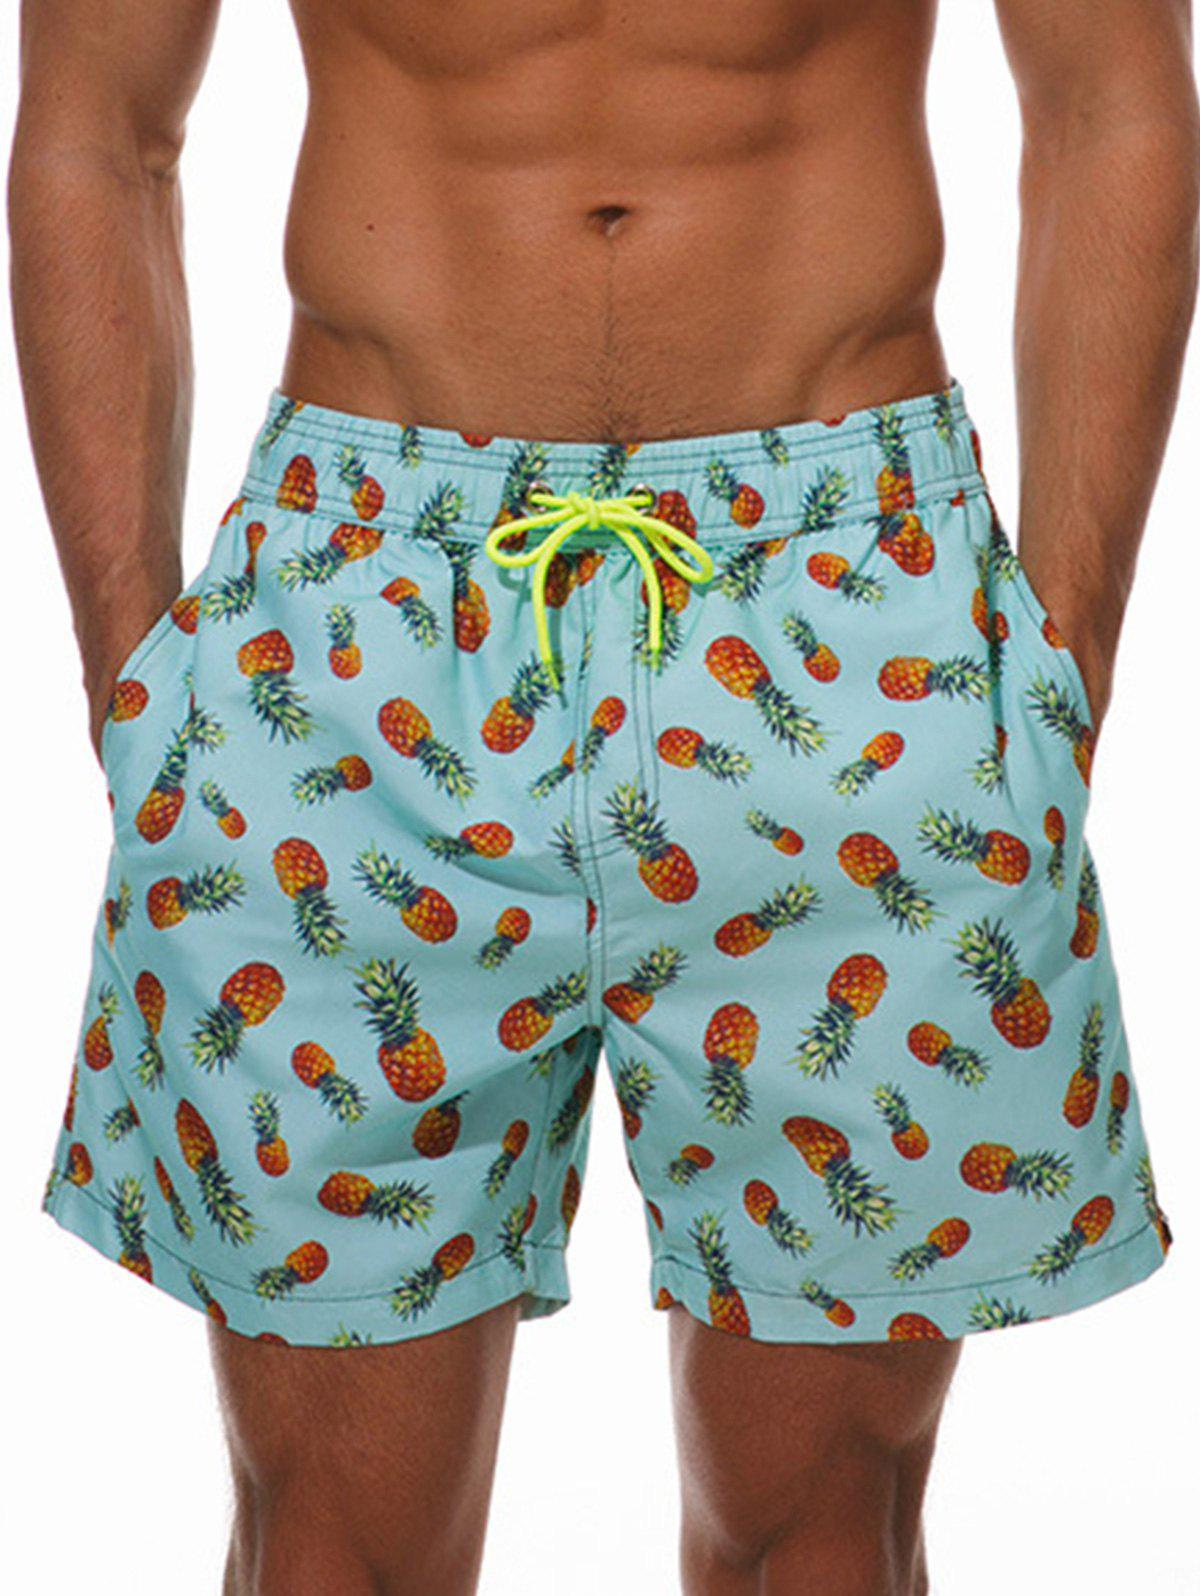 Allover Pineapple Print Drawstring Hawaiian Shorts - multicolor XL